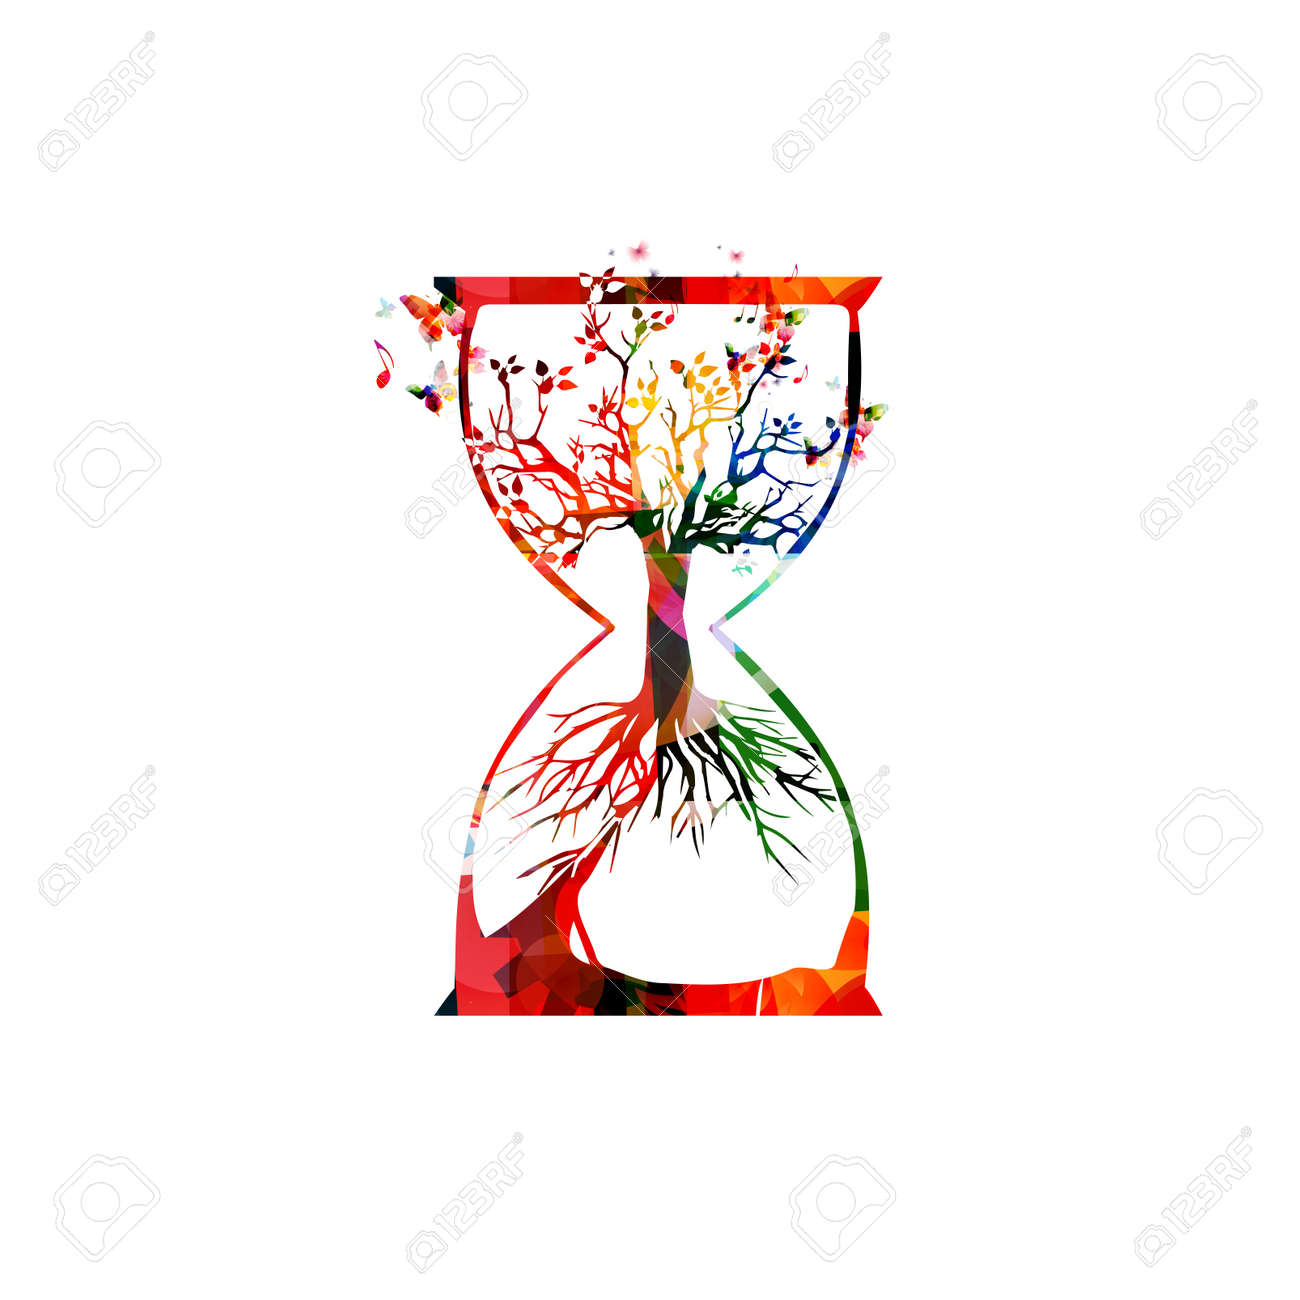 Colorful tree inside hourglass vector illustration. Design for ecology awareness, eco sustainability, plants preservation, nature protection, saving biodiversity, environmentally friendly concept - 67214066